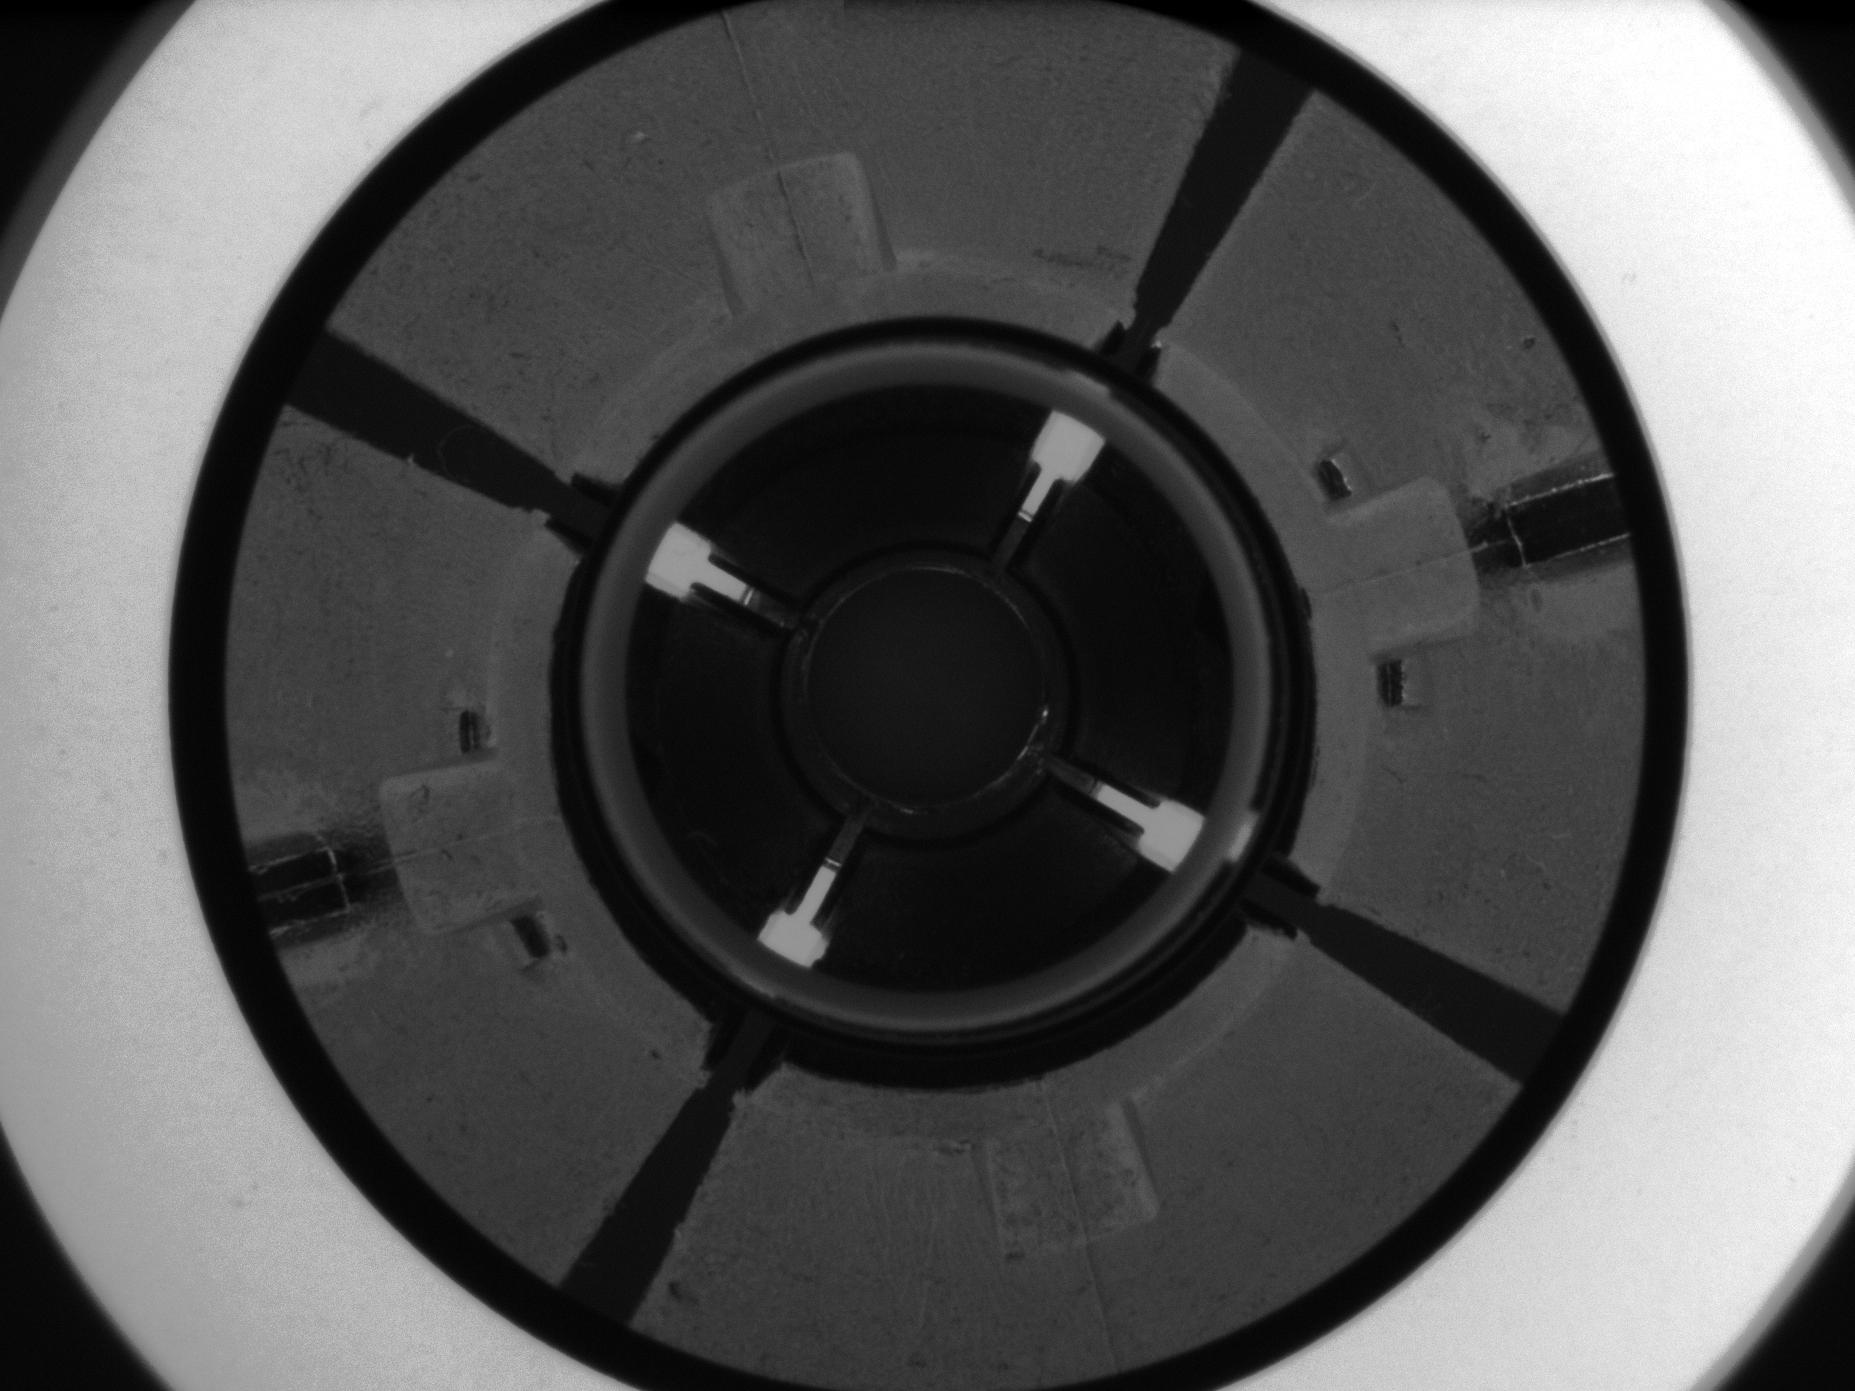 Mechanical component  imaged by PCCD